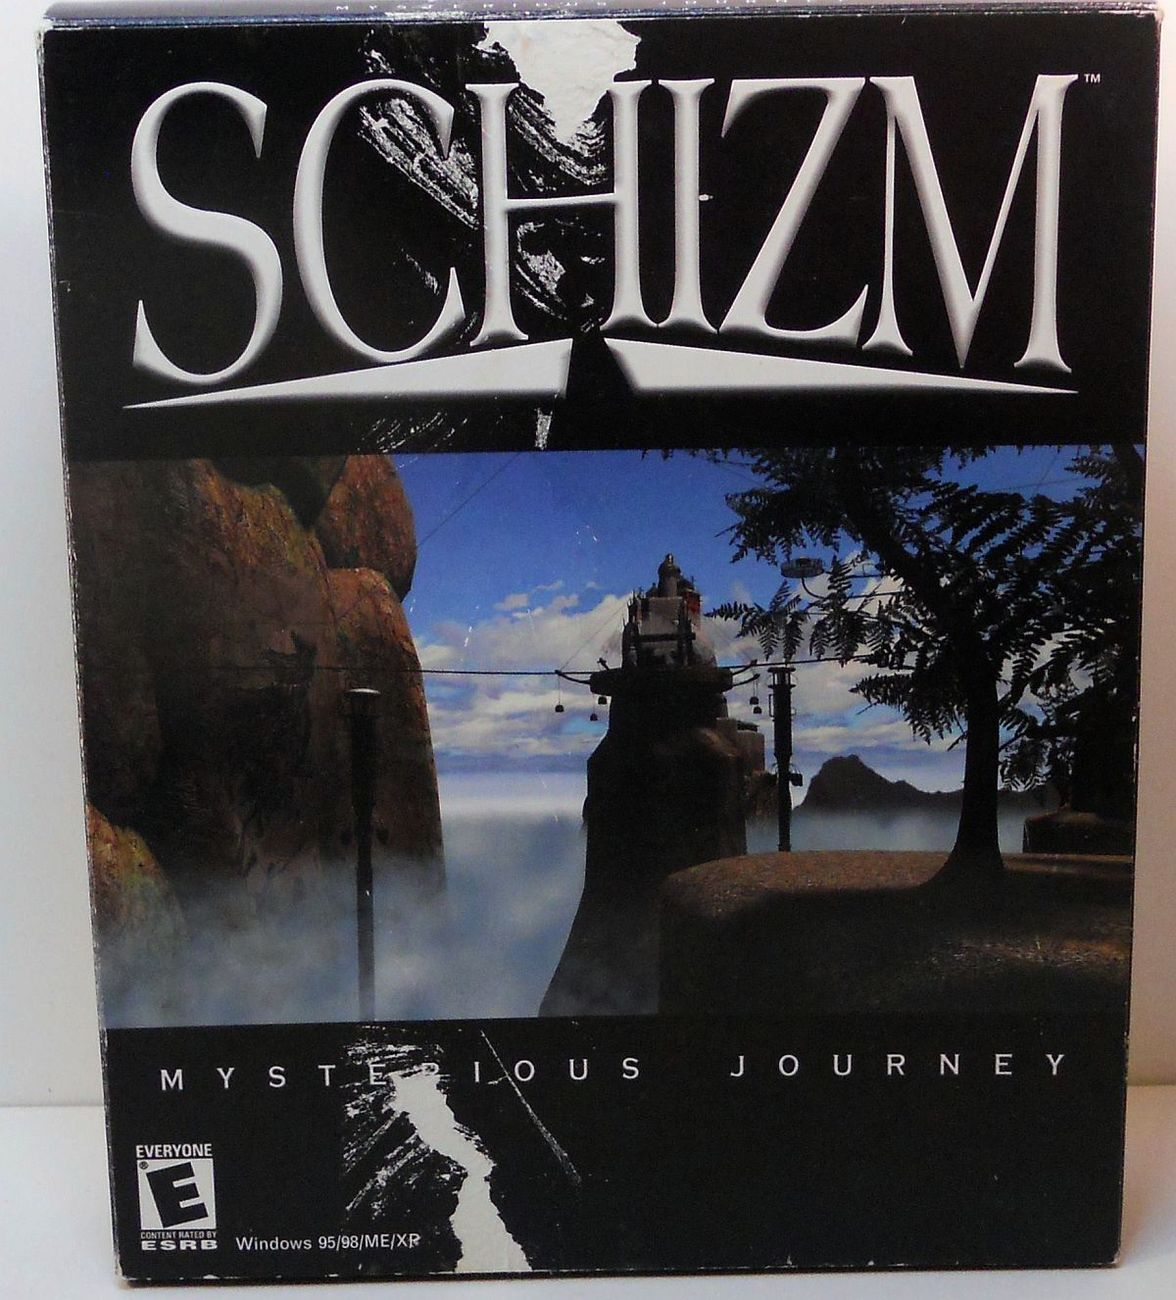 Image 0 of Schizm Mysterious Journey PC game  Science Fiction Everyone